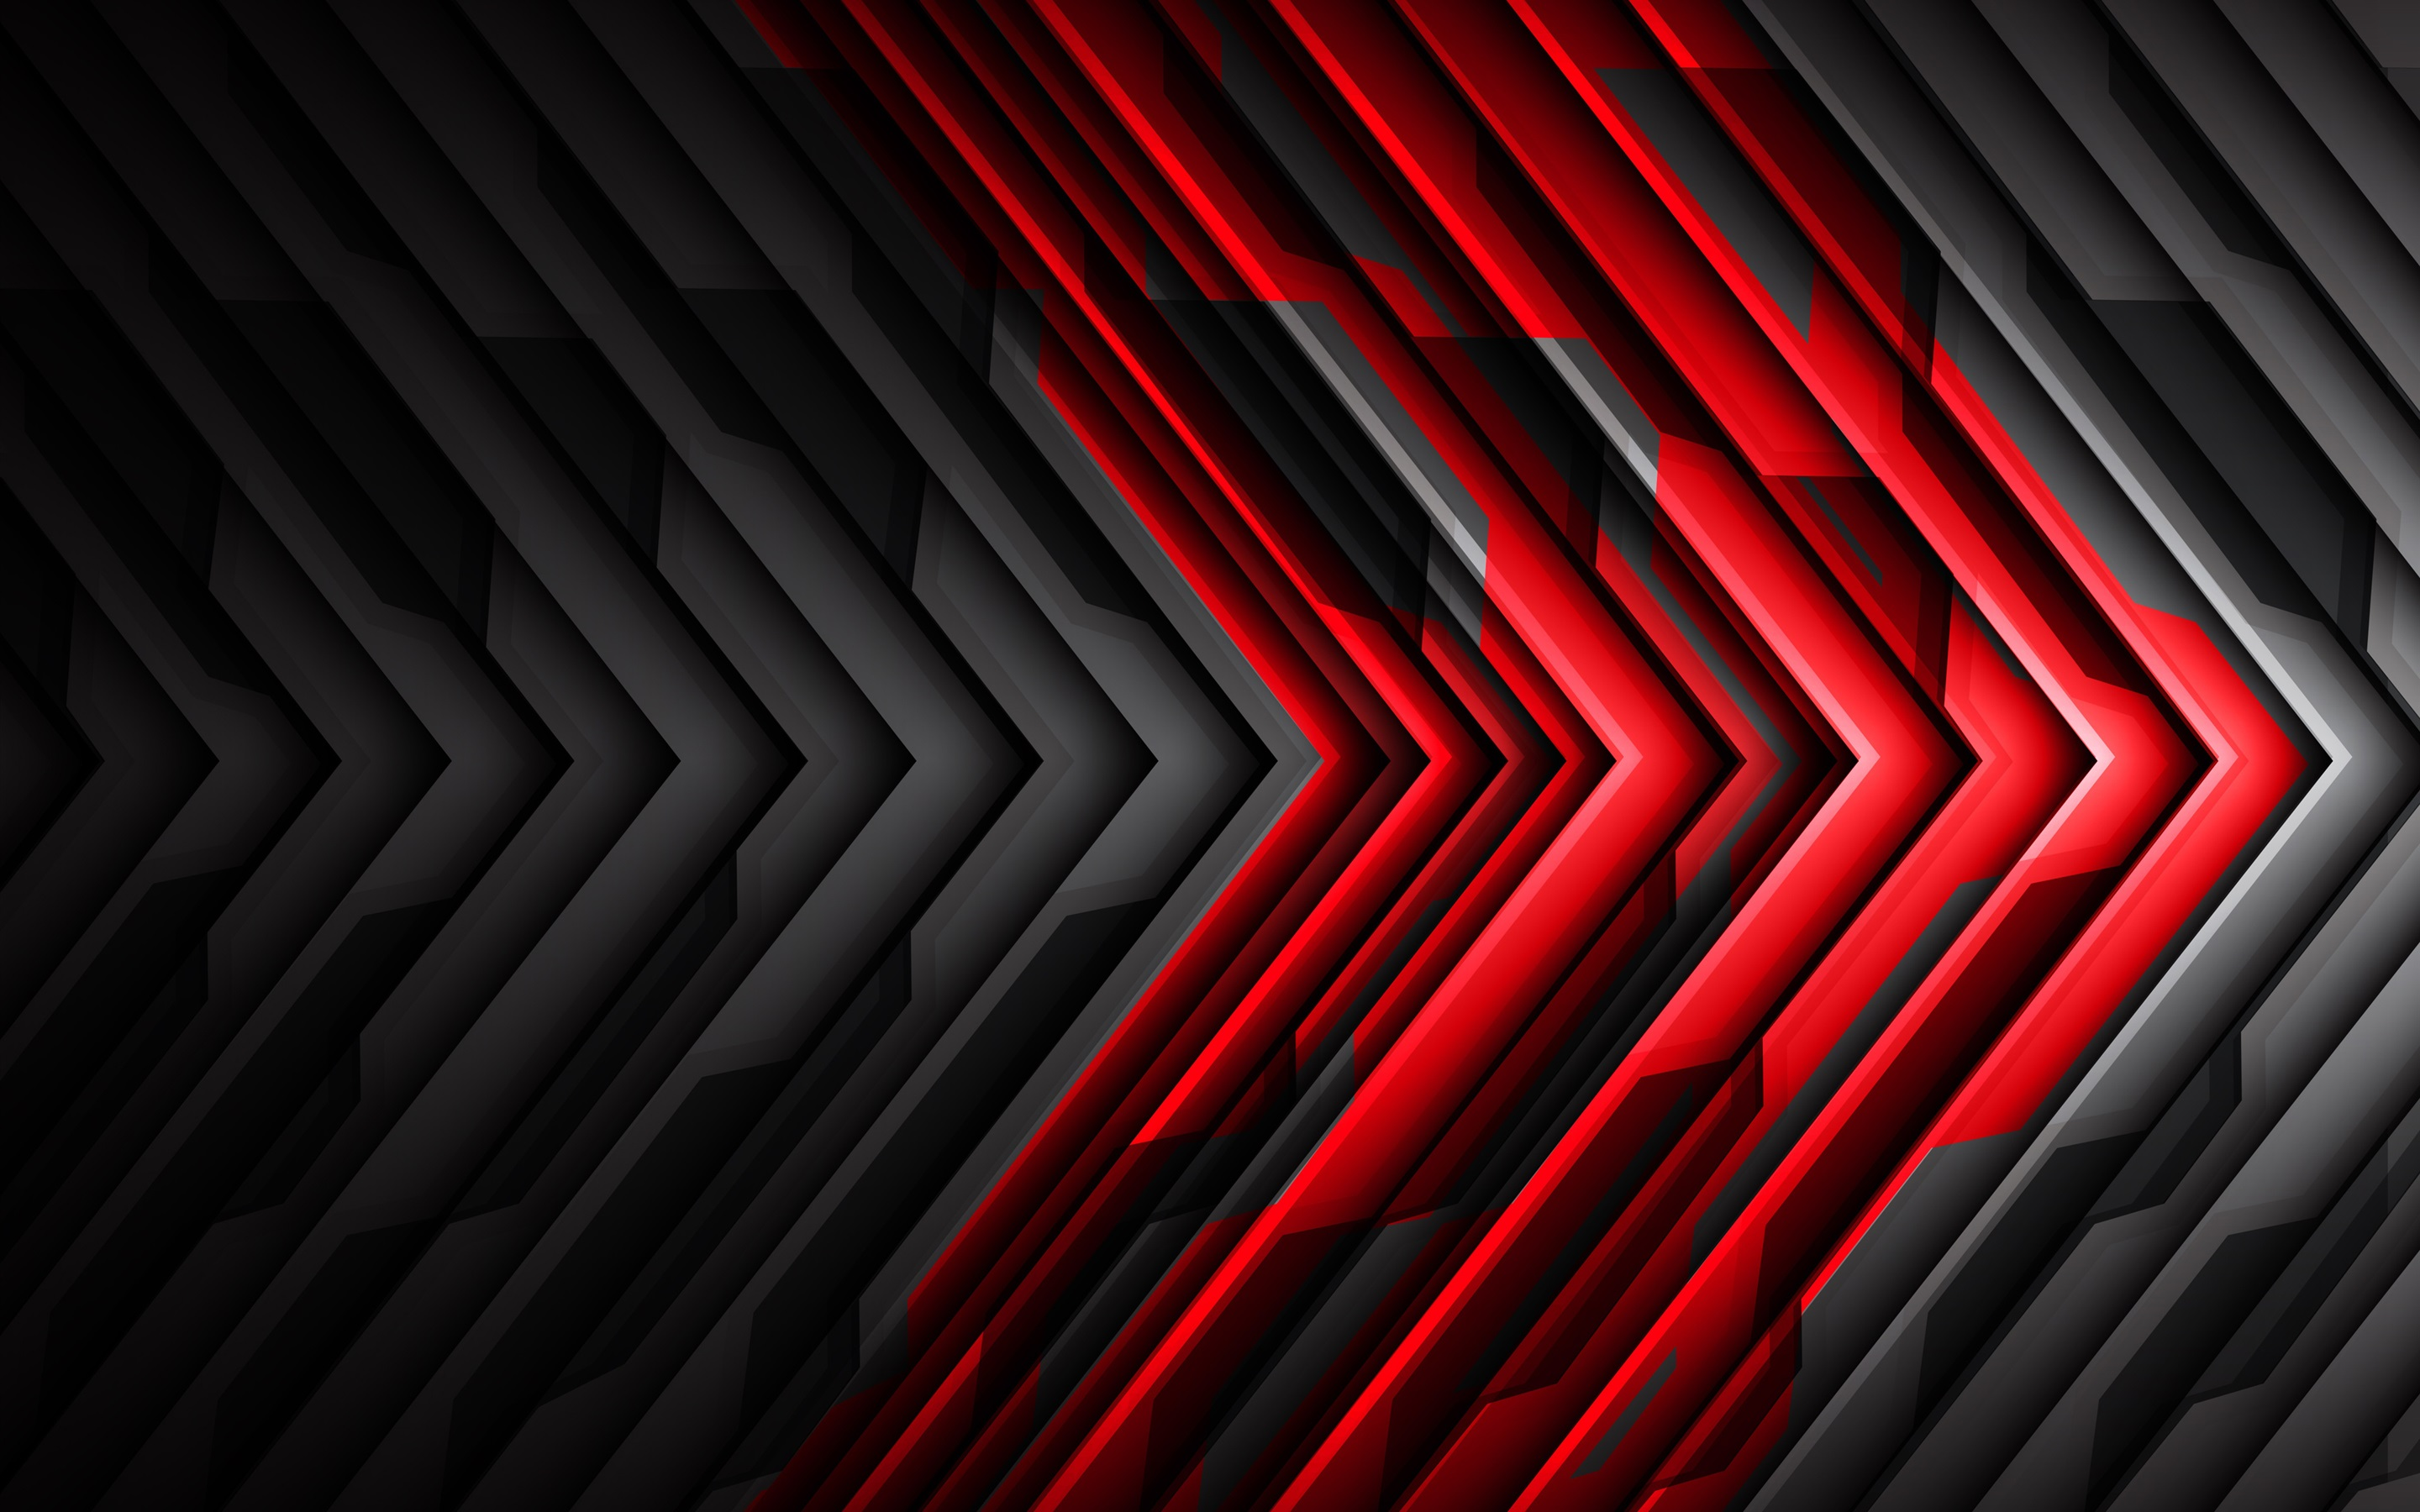 Black And Red >> Black And Red Striped Arrow Abstract 1080x1920 Iphone 8 7 6